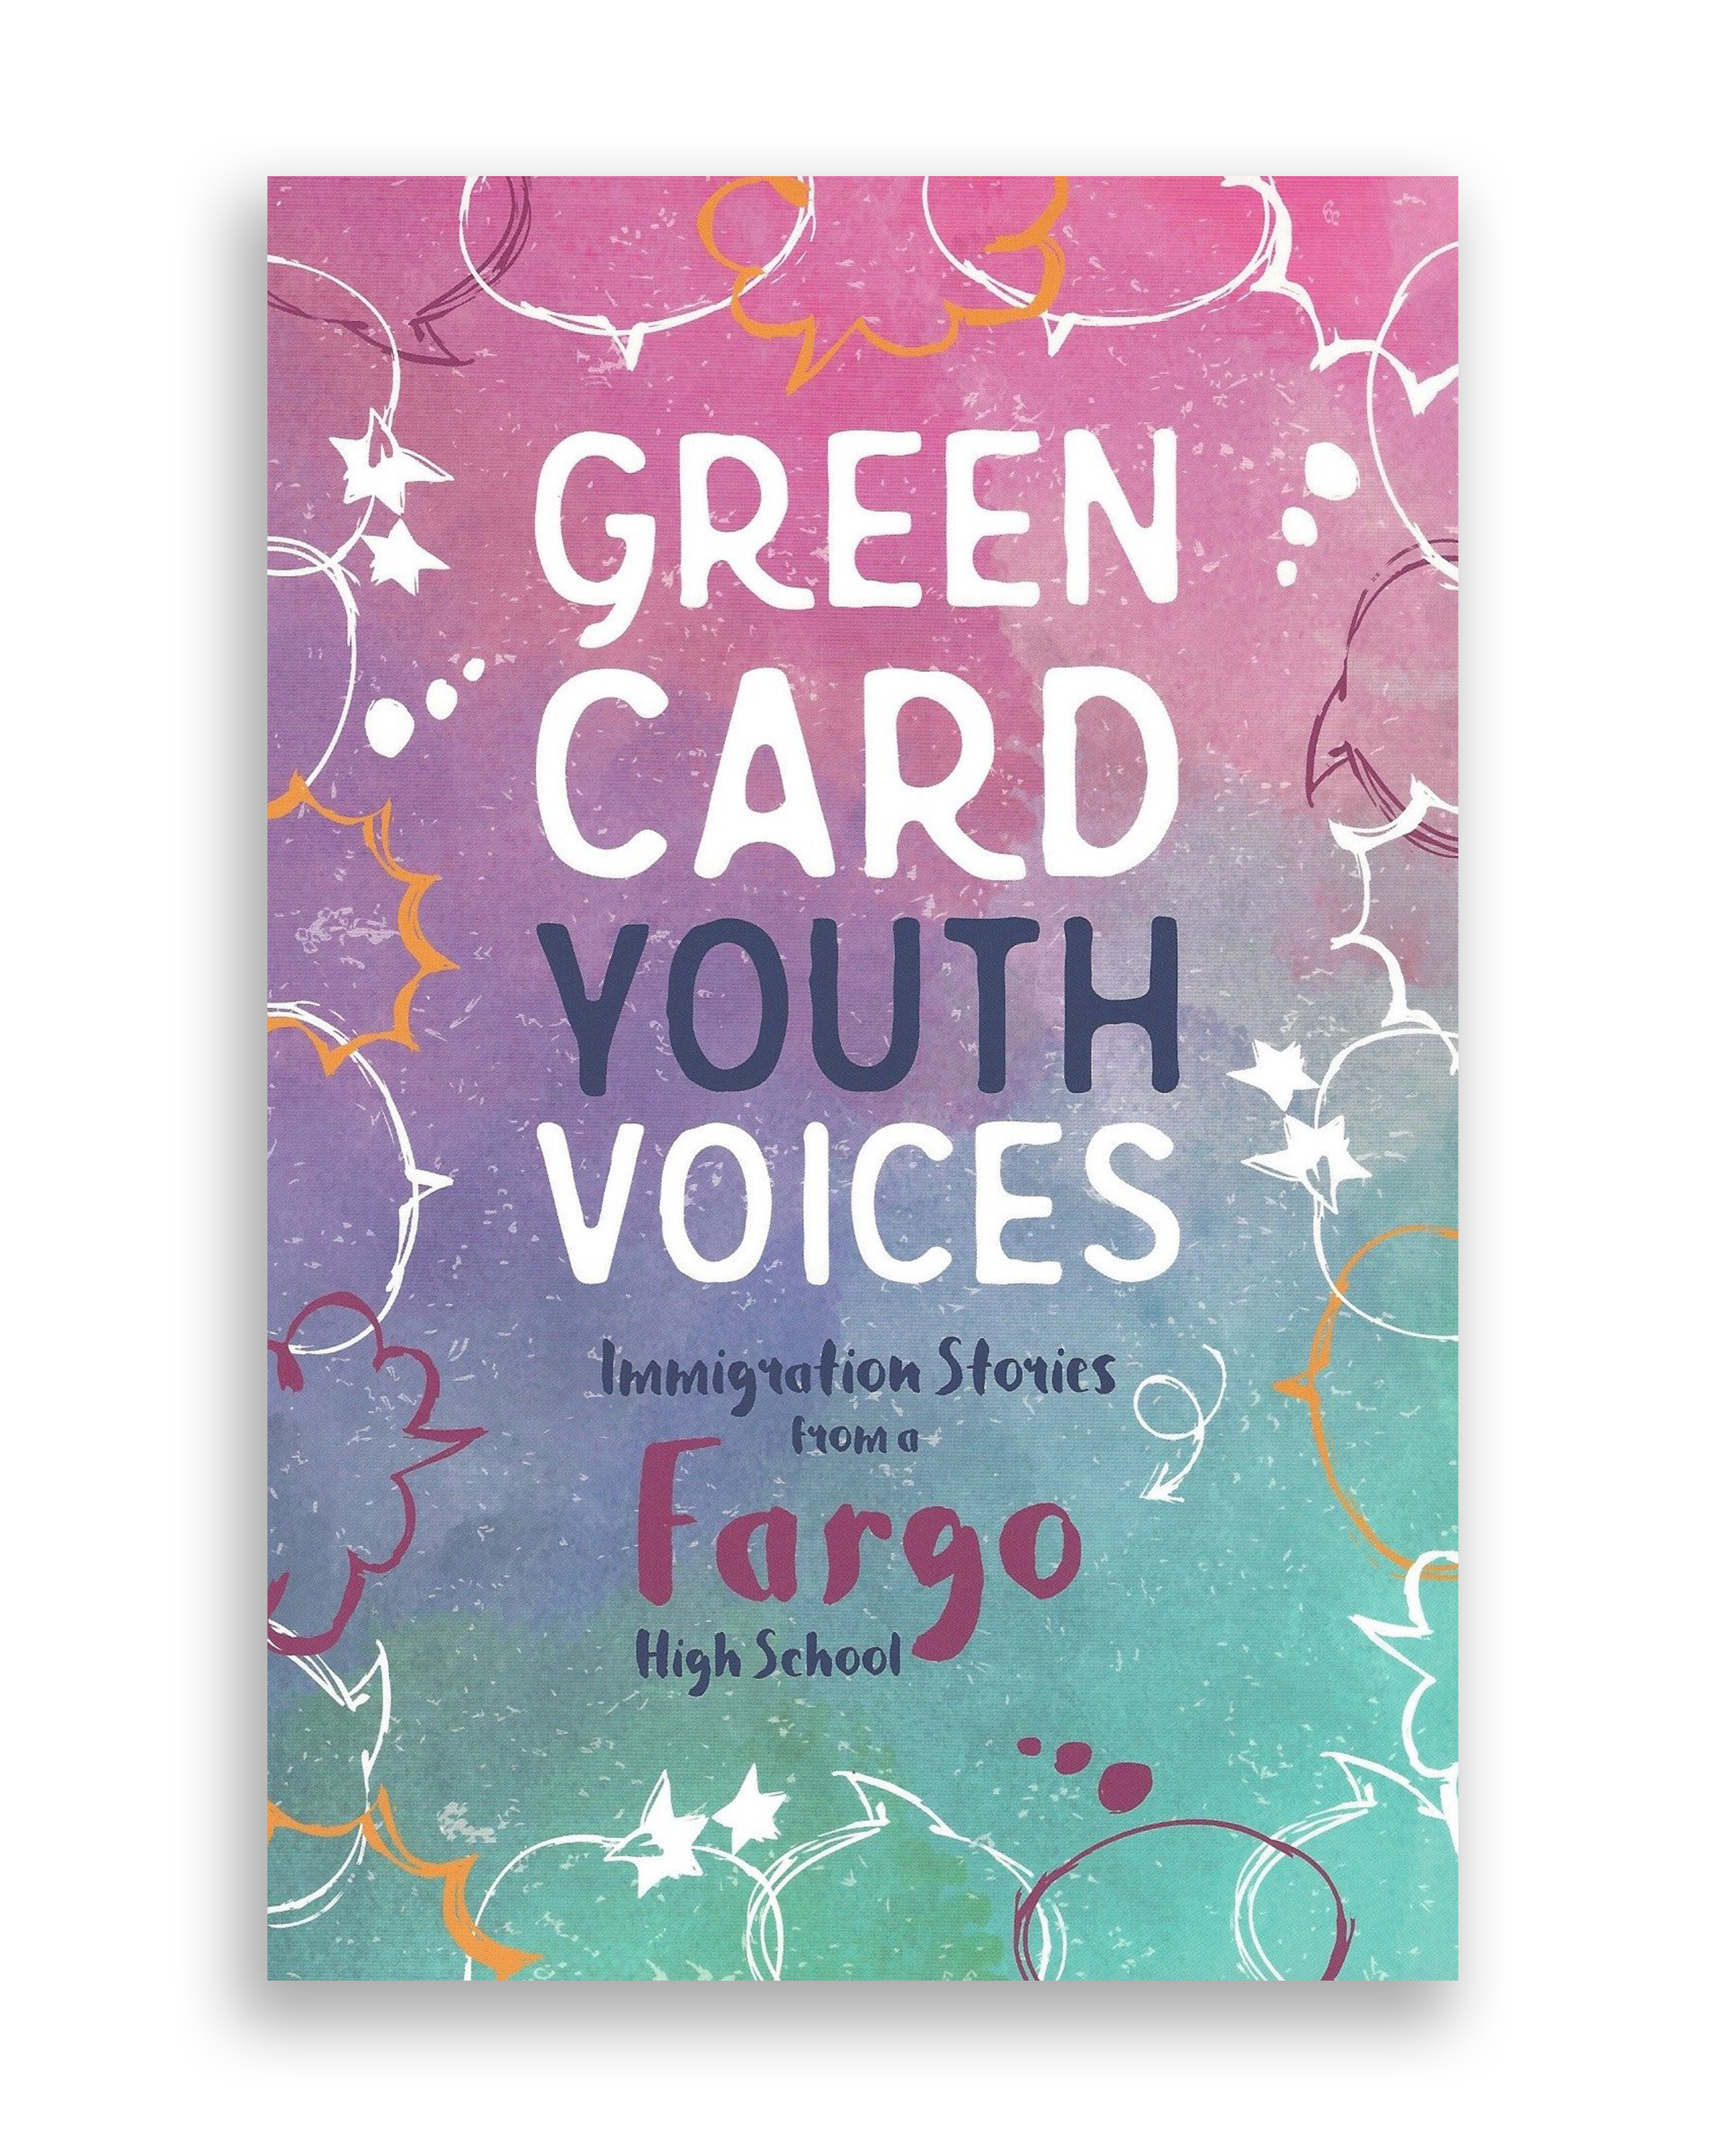 green card youth voices book cover.png